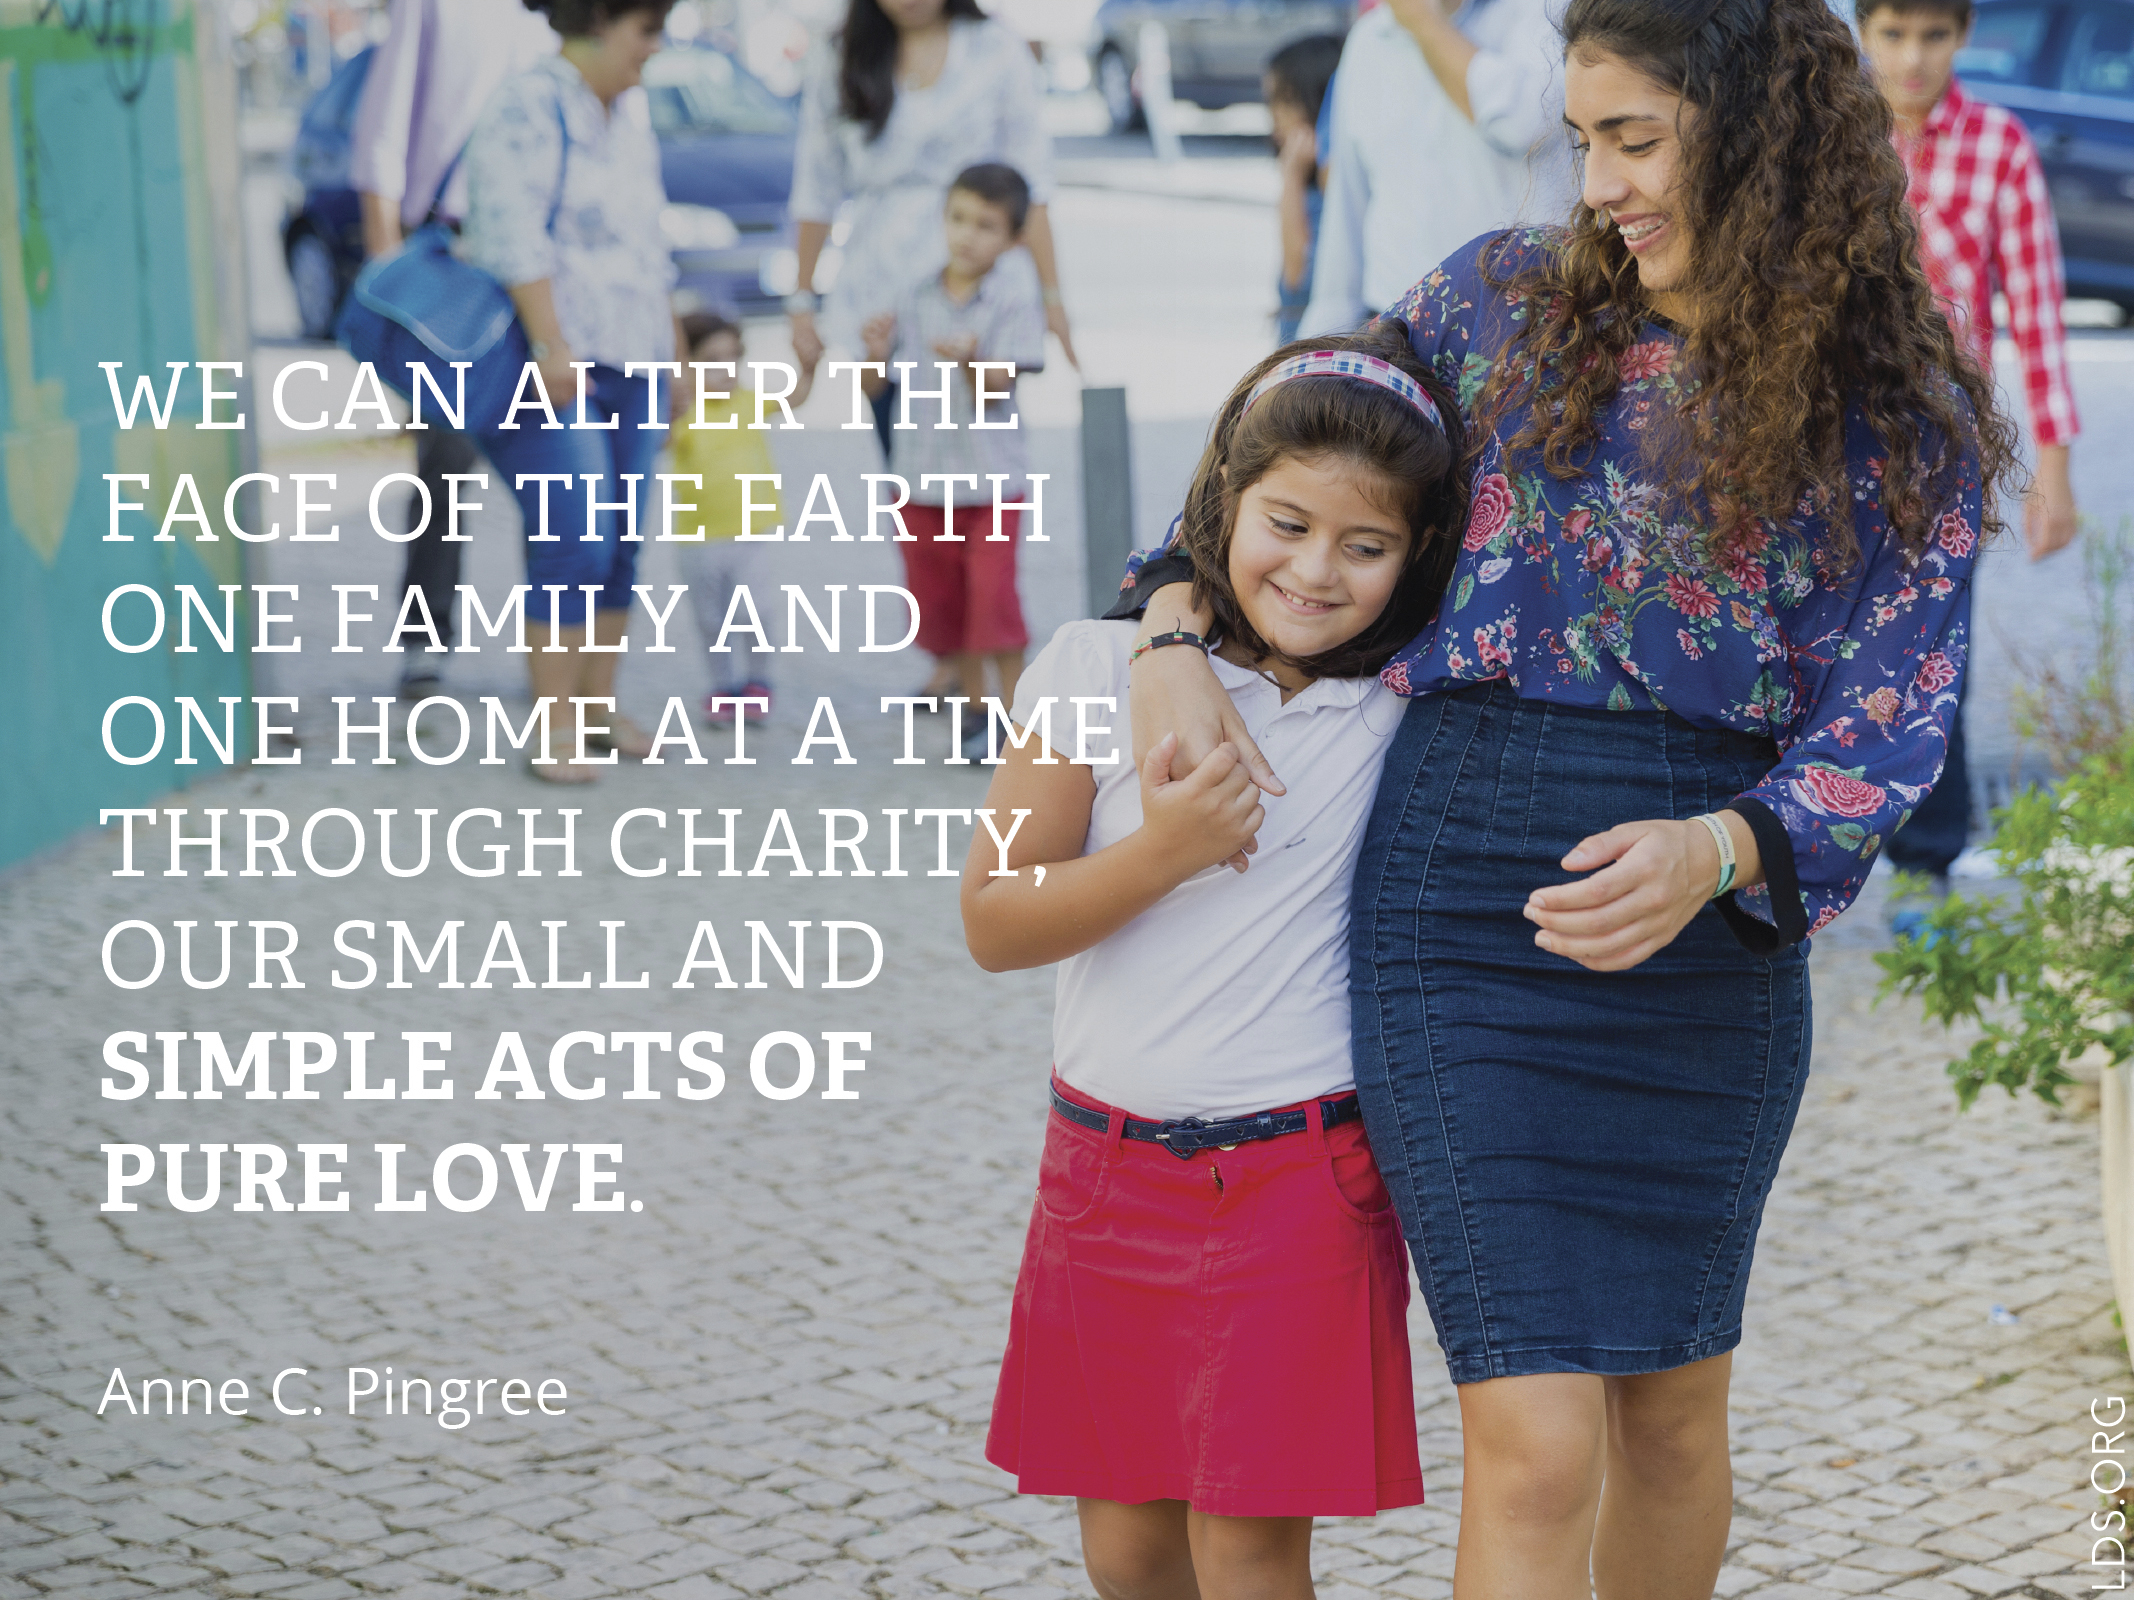 """""""We can alter the face of the earth one family and one home at a time through charity, our small and simple acts of pure love.""""—Sister Anne C. Pingree, """"Charity: One Family, One Home at a Time"""""""